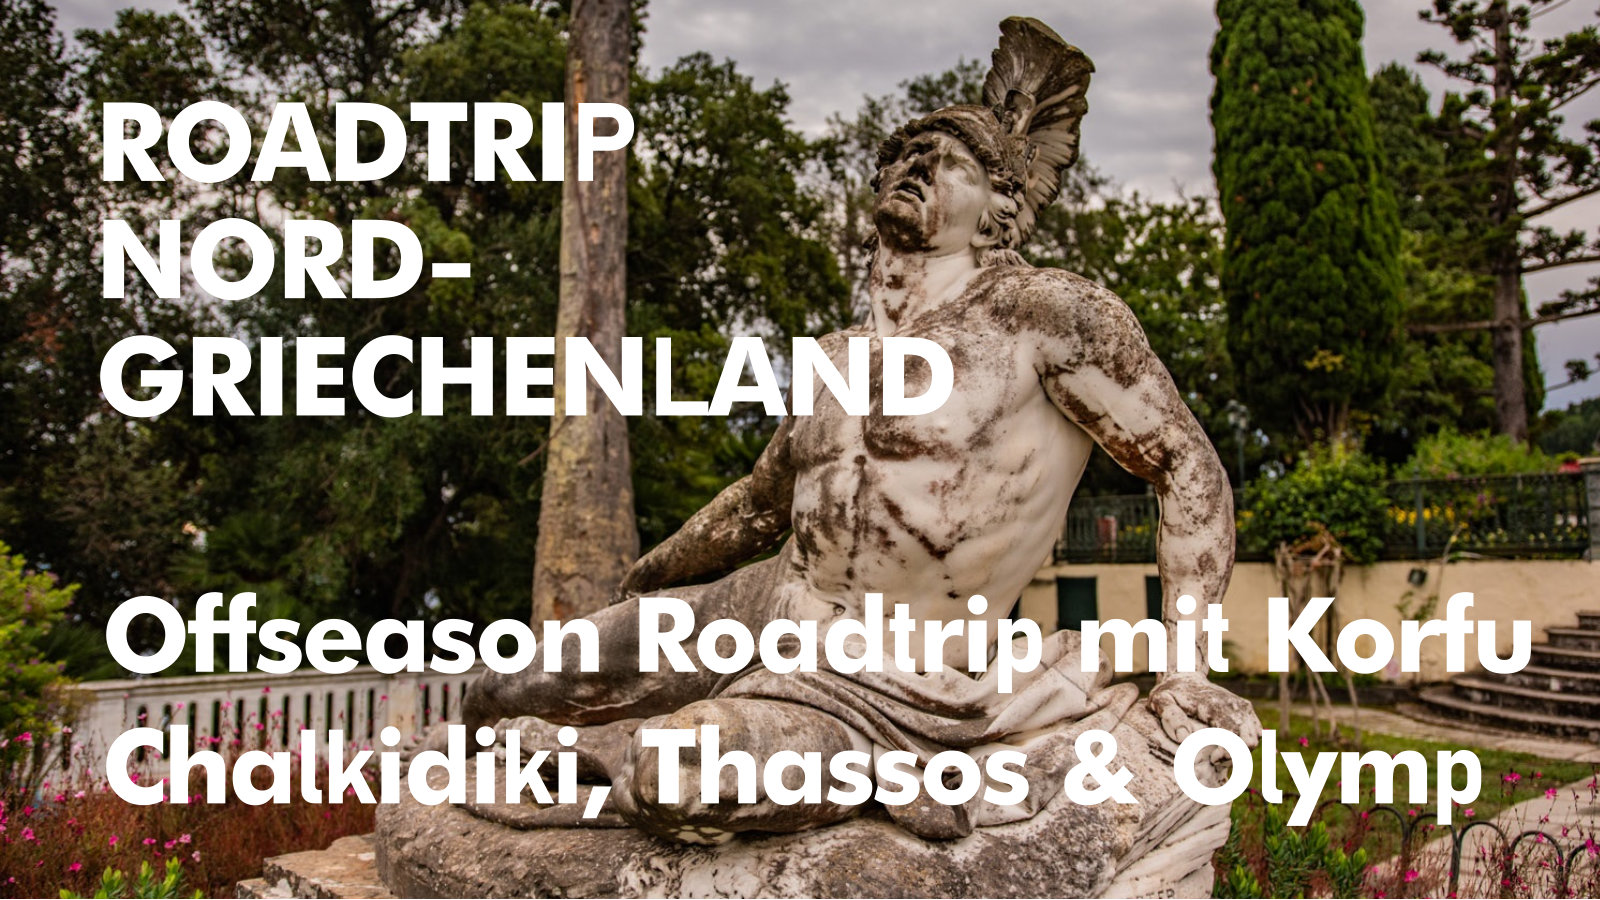 Roadtrip Nordgriechenland